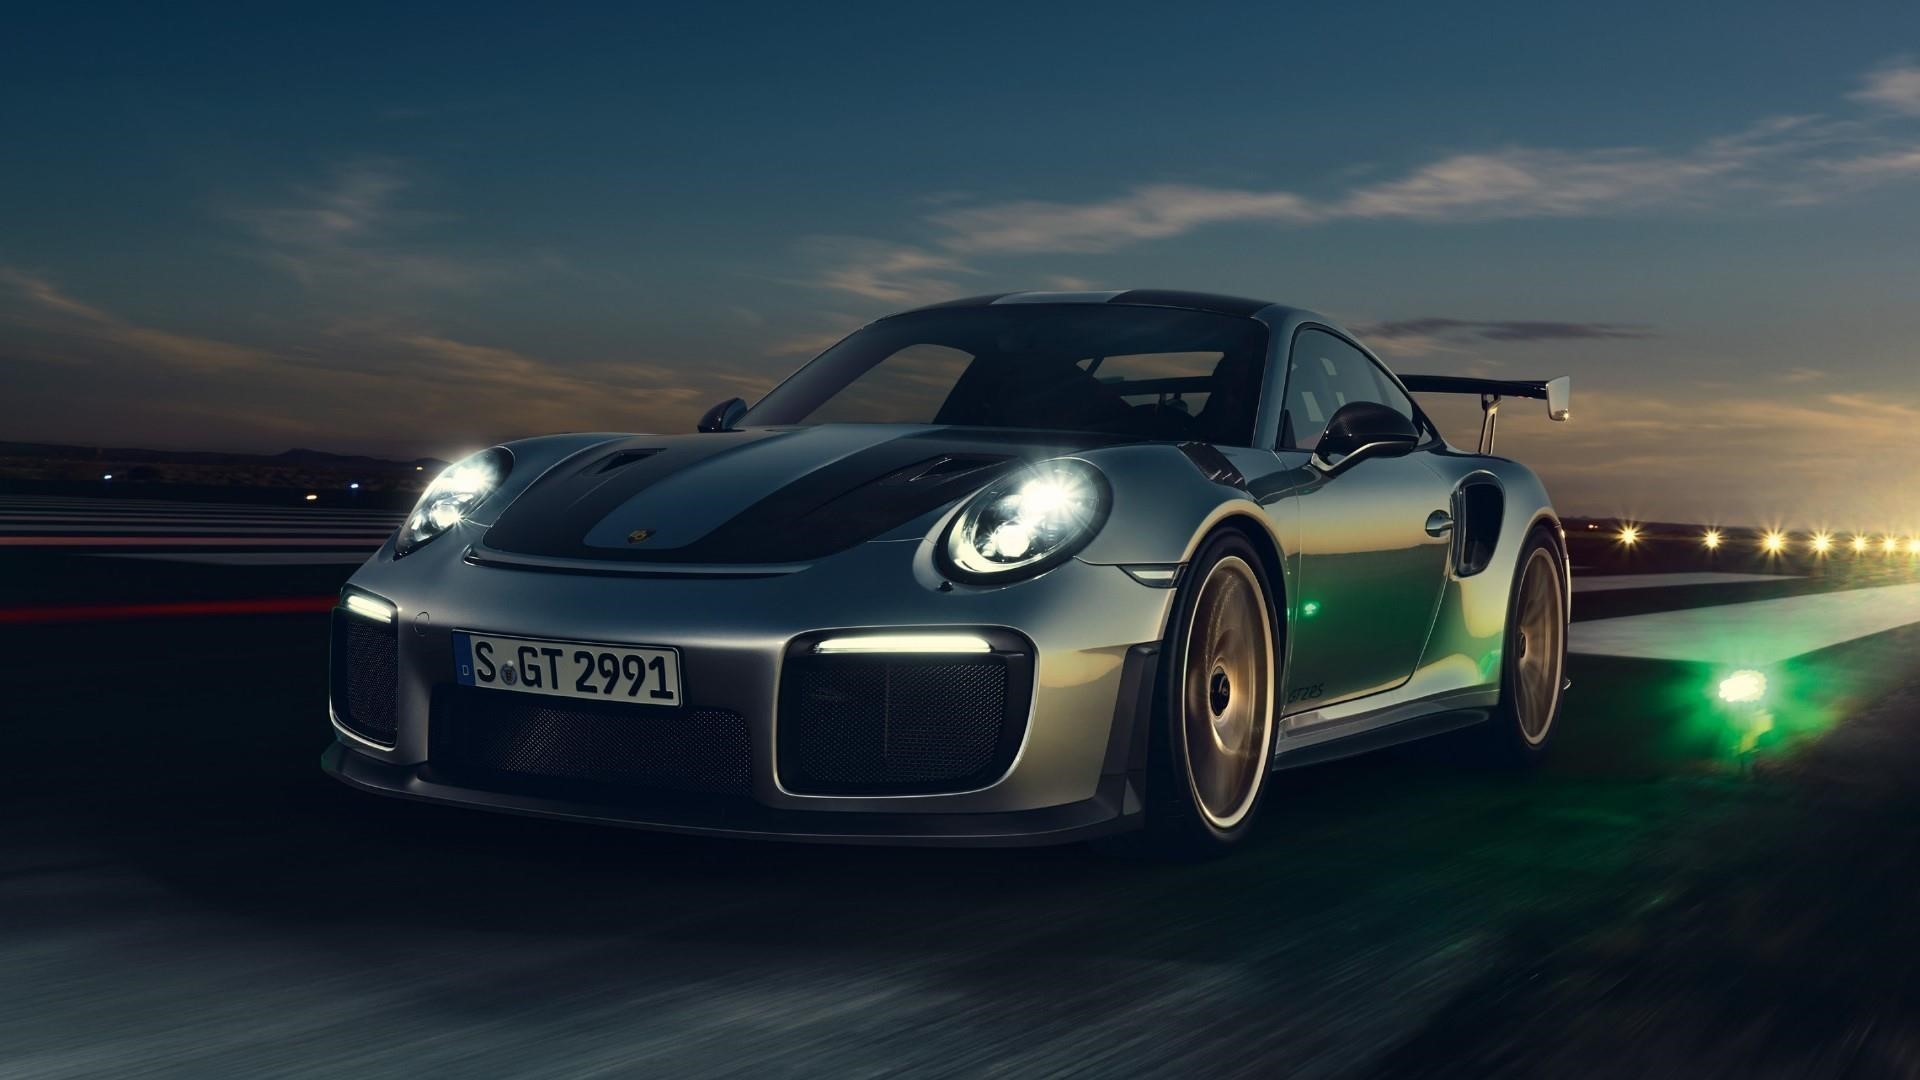 Porsche 1080p Wallpapers